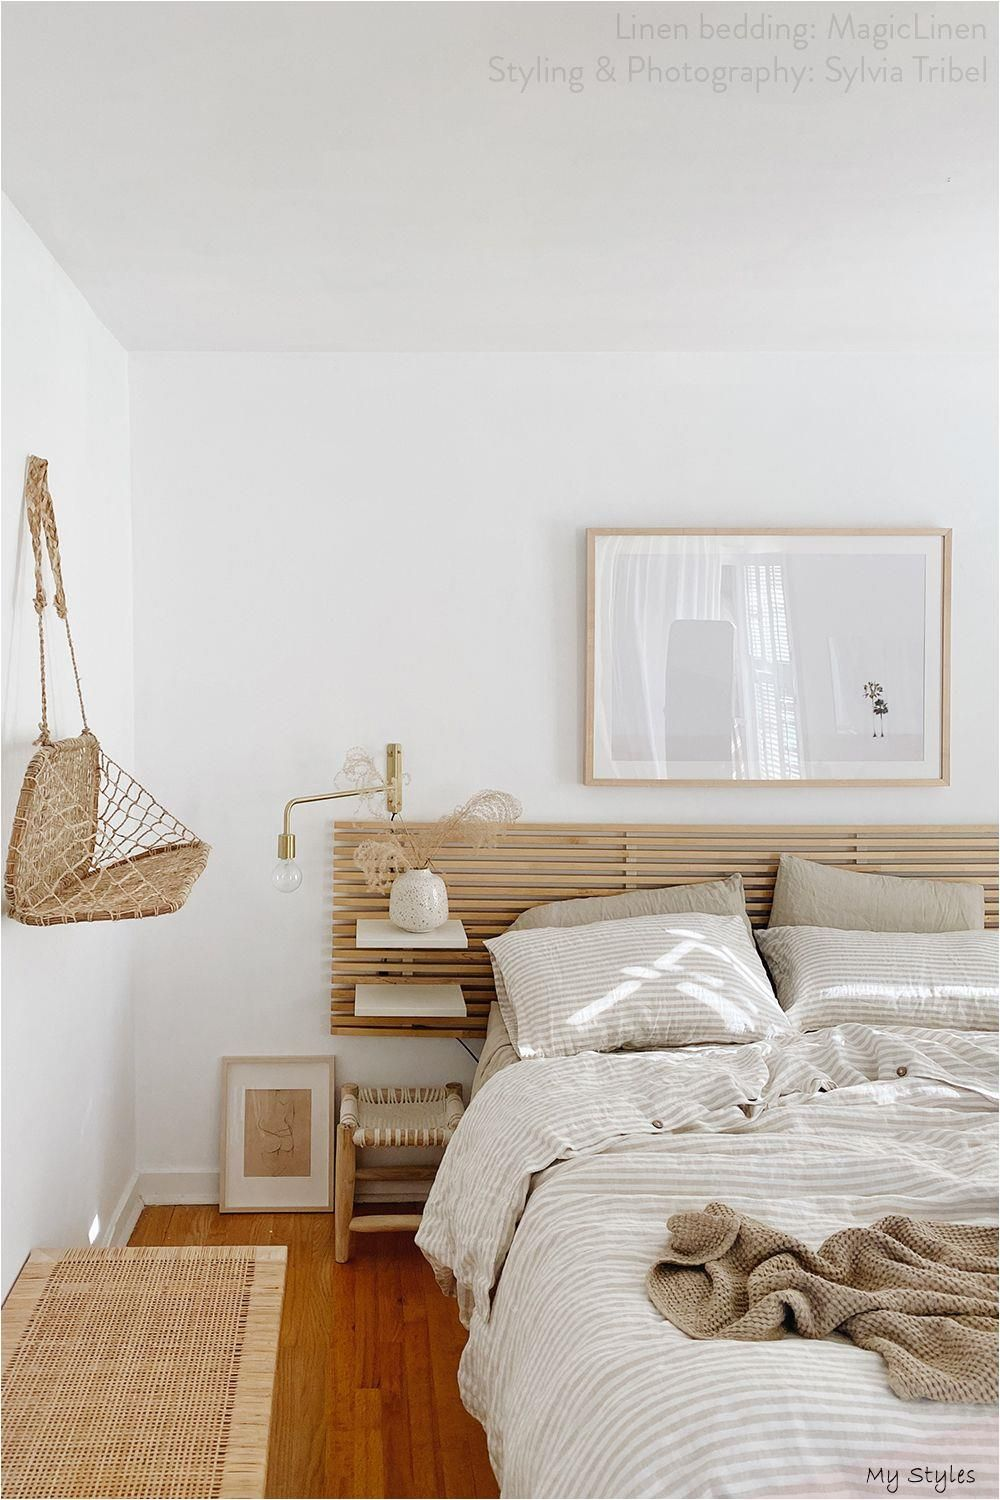 May 21 2020 Create A Cozy Oasis In Your Bedroom Decor With